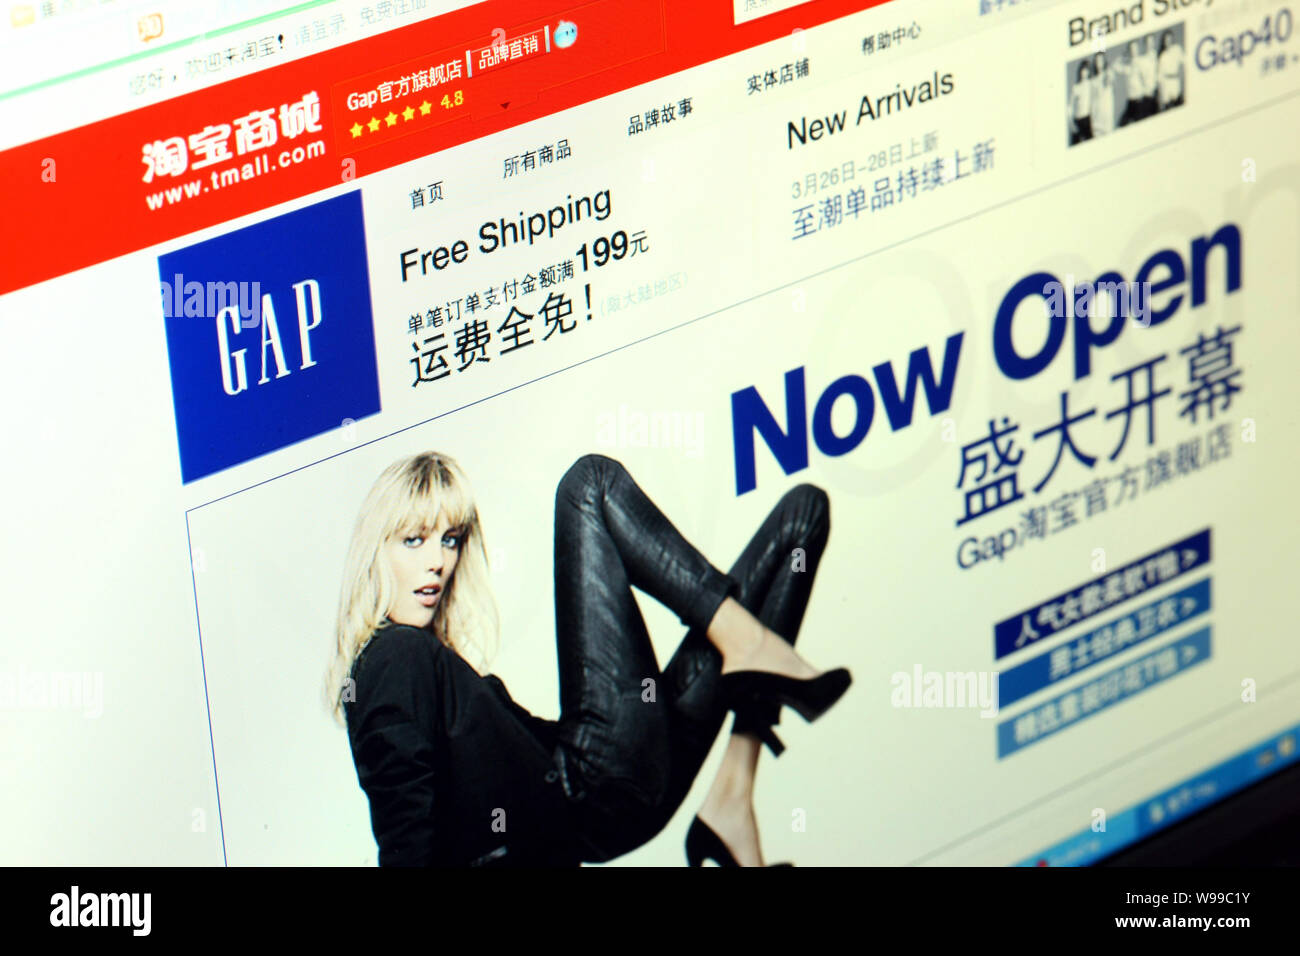 gap online shop